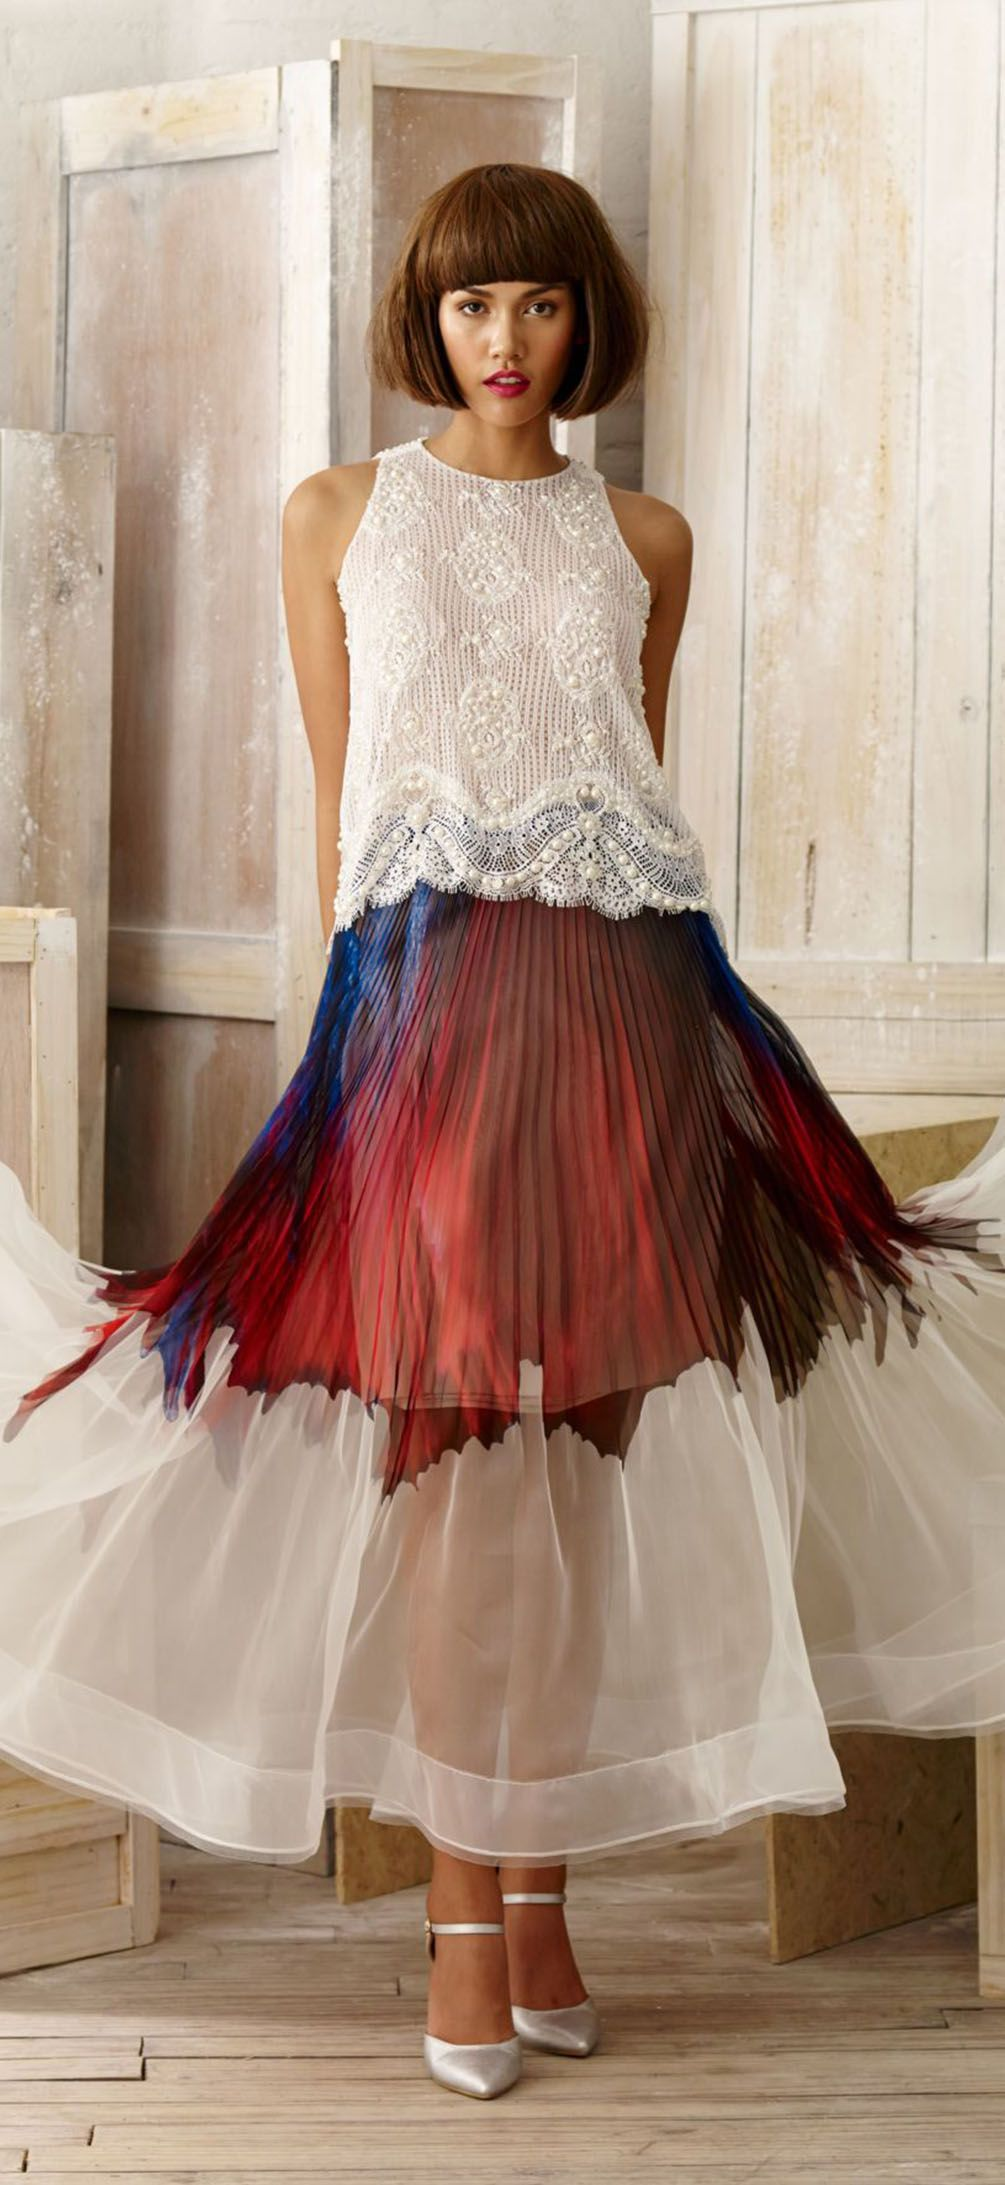 Wedding dress shops in deira dubai  Pin by CoCoonTrend on CoCoonTrend   Pinterest